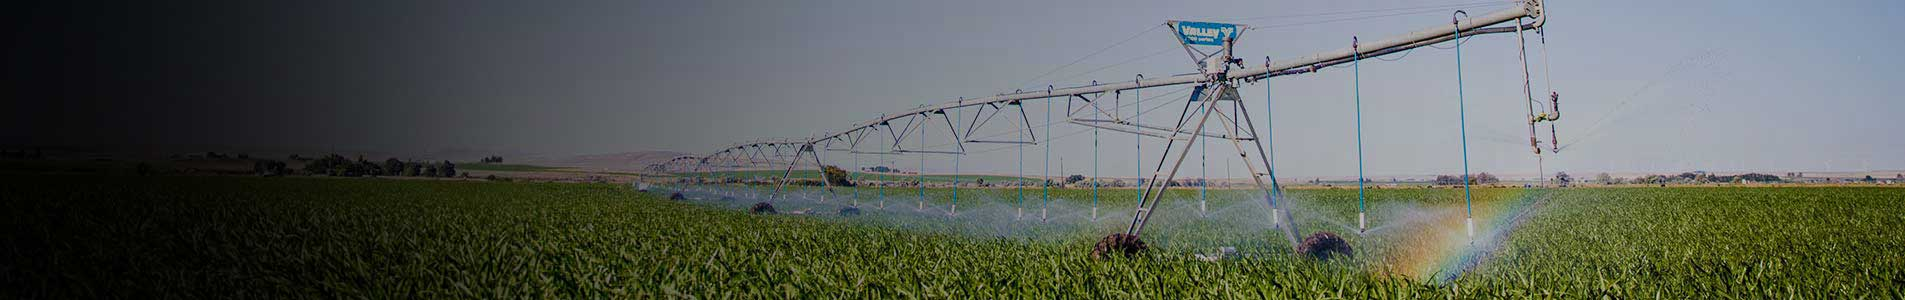 valley  drought solutions - irrigation solutions